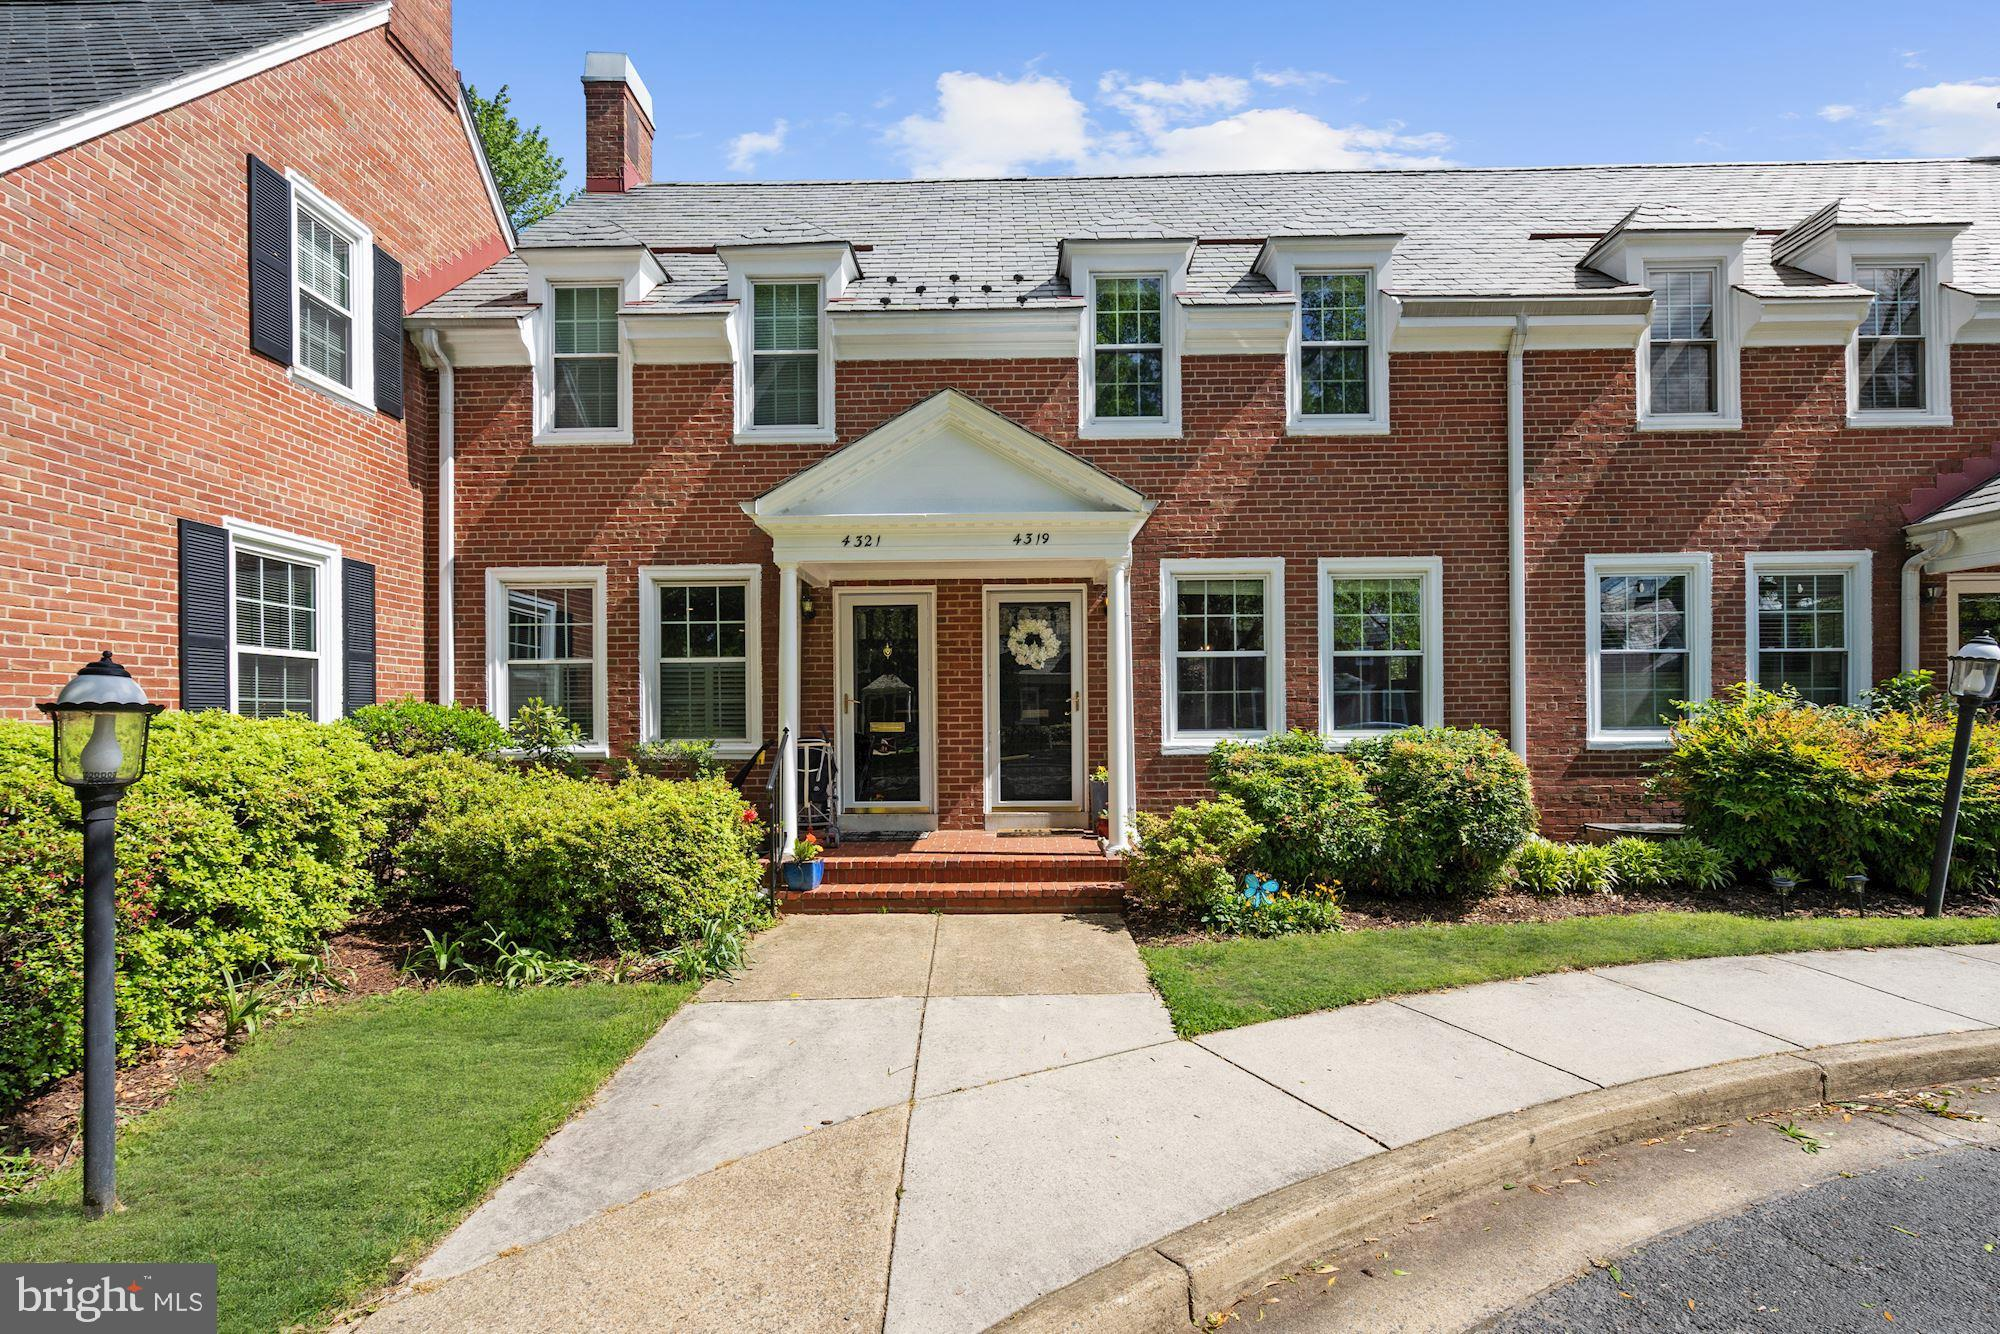 Ideally located Full-Size Clarendon in the ever-popular Fairlington/Shirlington neighborhood. Some of the beautiful finishes include - a renovated and open gourmet kitchen with leathered granite counters, recessed lights, new cabinets, refrigerator, and breakfast bar. Entire main level is full of natural light and walks out to a spacious brick patio for relaxing and entertaining within your fenced in yard. A sharp upstairs bathroom renovation, hardwood floors on the main and upper level, drywall instead of paneling on the lower level recreation/family room with recessed lighting and possible 3rd bedroom and full bathroom. Kitchen, HVAC, Fence, Roof, Patio, lighting, etc all completed in the last 3 years. Additional amenities include one reserved parking spot right out front. Fairlington low fees include access to the outdoor pool, common grounds, tennis courts, and a tot lot/playground.Four amazingly close shopping areas include the brand new Alexandria Gateway, The Villages of Shirlington, Bradlee Shopping Center, and Fairlington Centre, all with restaurants, shops, and satisfying treasures. Tree Lined streets and large open green spaces make Fairlington such a desirable place to call home. All of this, and quick access to Old Town Alexandria and Washington DC, with the convenience of I-395 and multiple Bus services to Pentagon City Metro and King Street Metro. Fairlington is listed on both the National Register of Historic Places and on the Virginia Landmarks Register.